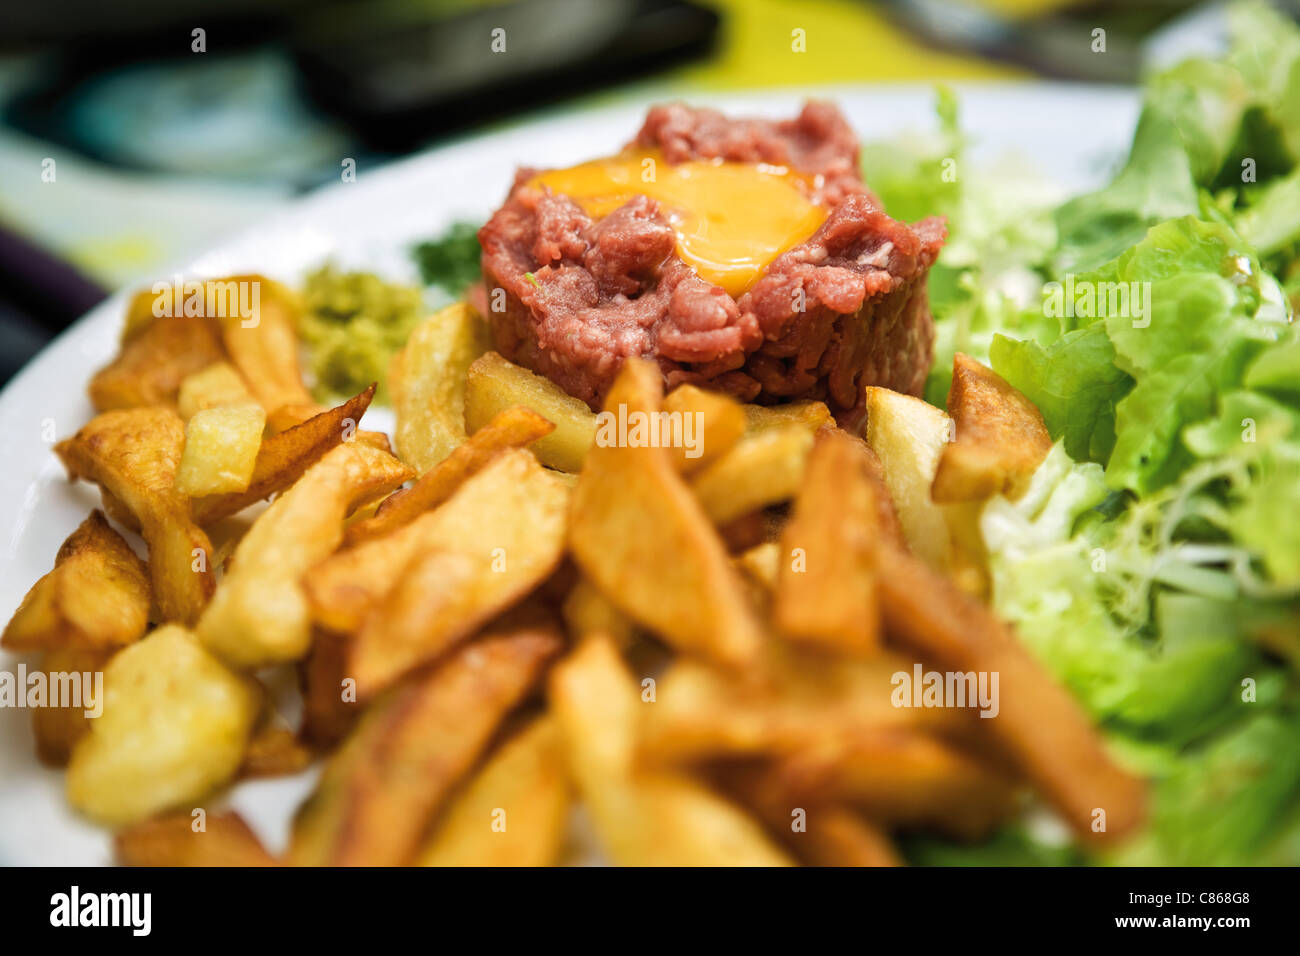 Steak tartare and french fries - Stock Image